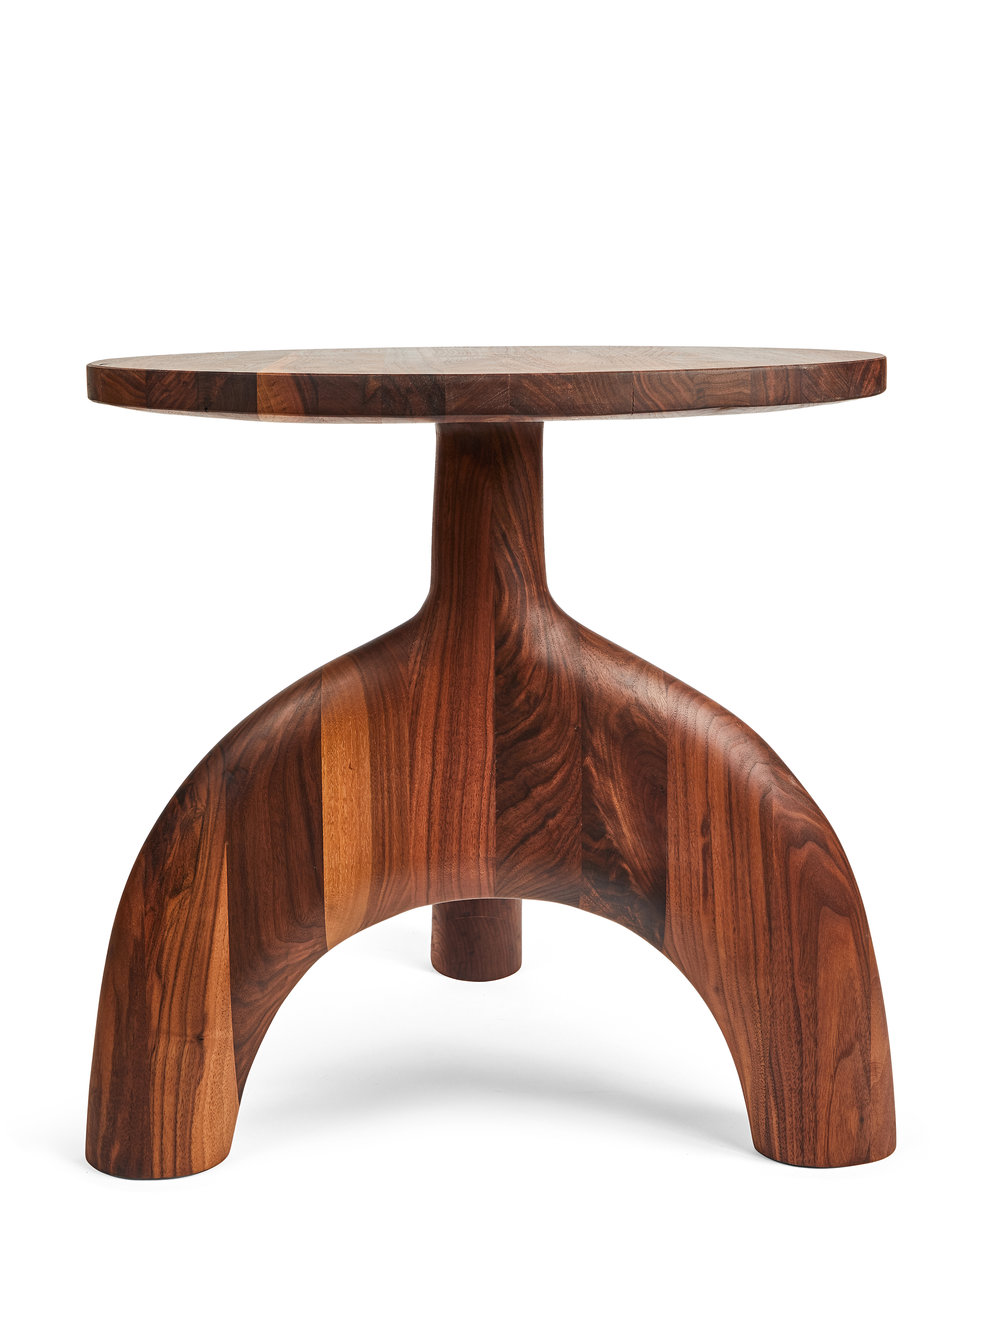 SCULPTURE 001 WALNUT SIDE TABLE (4).jpg